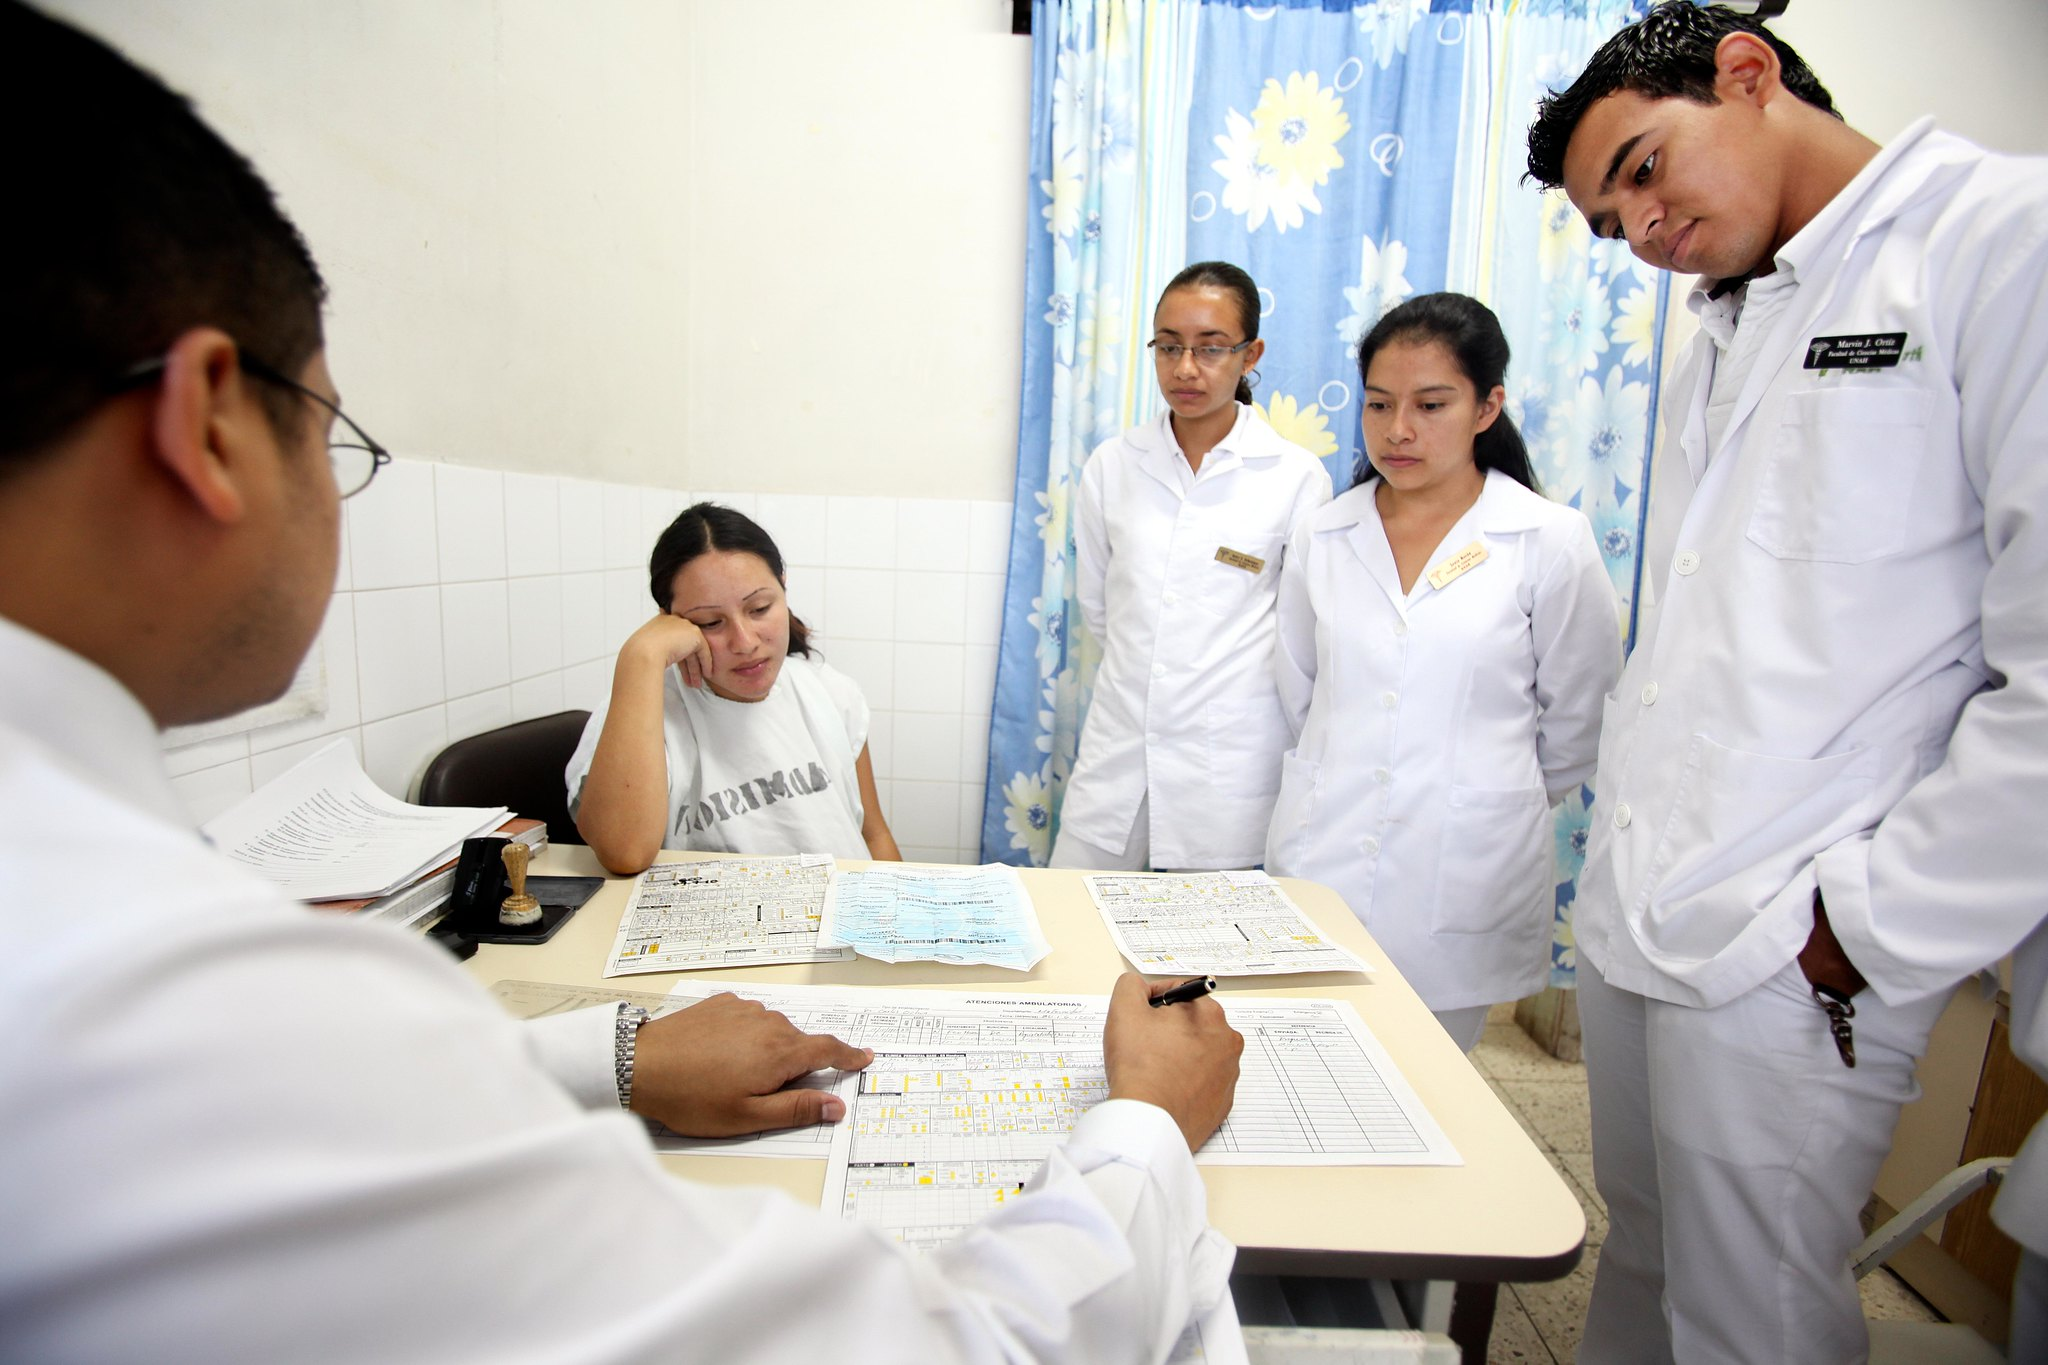 Medical professionals gather around a set of documents